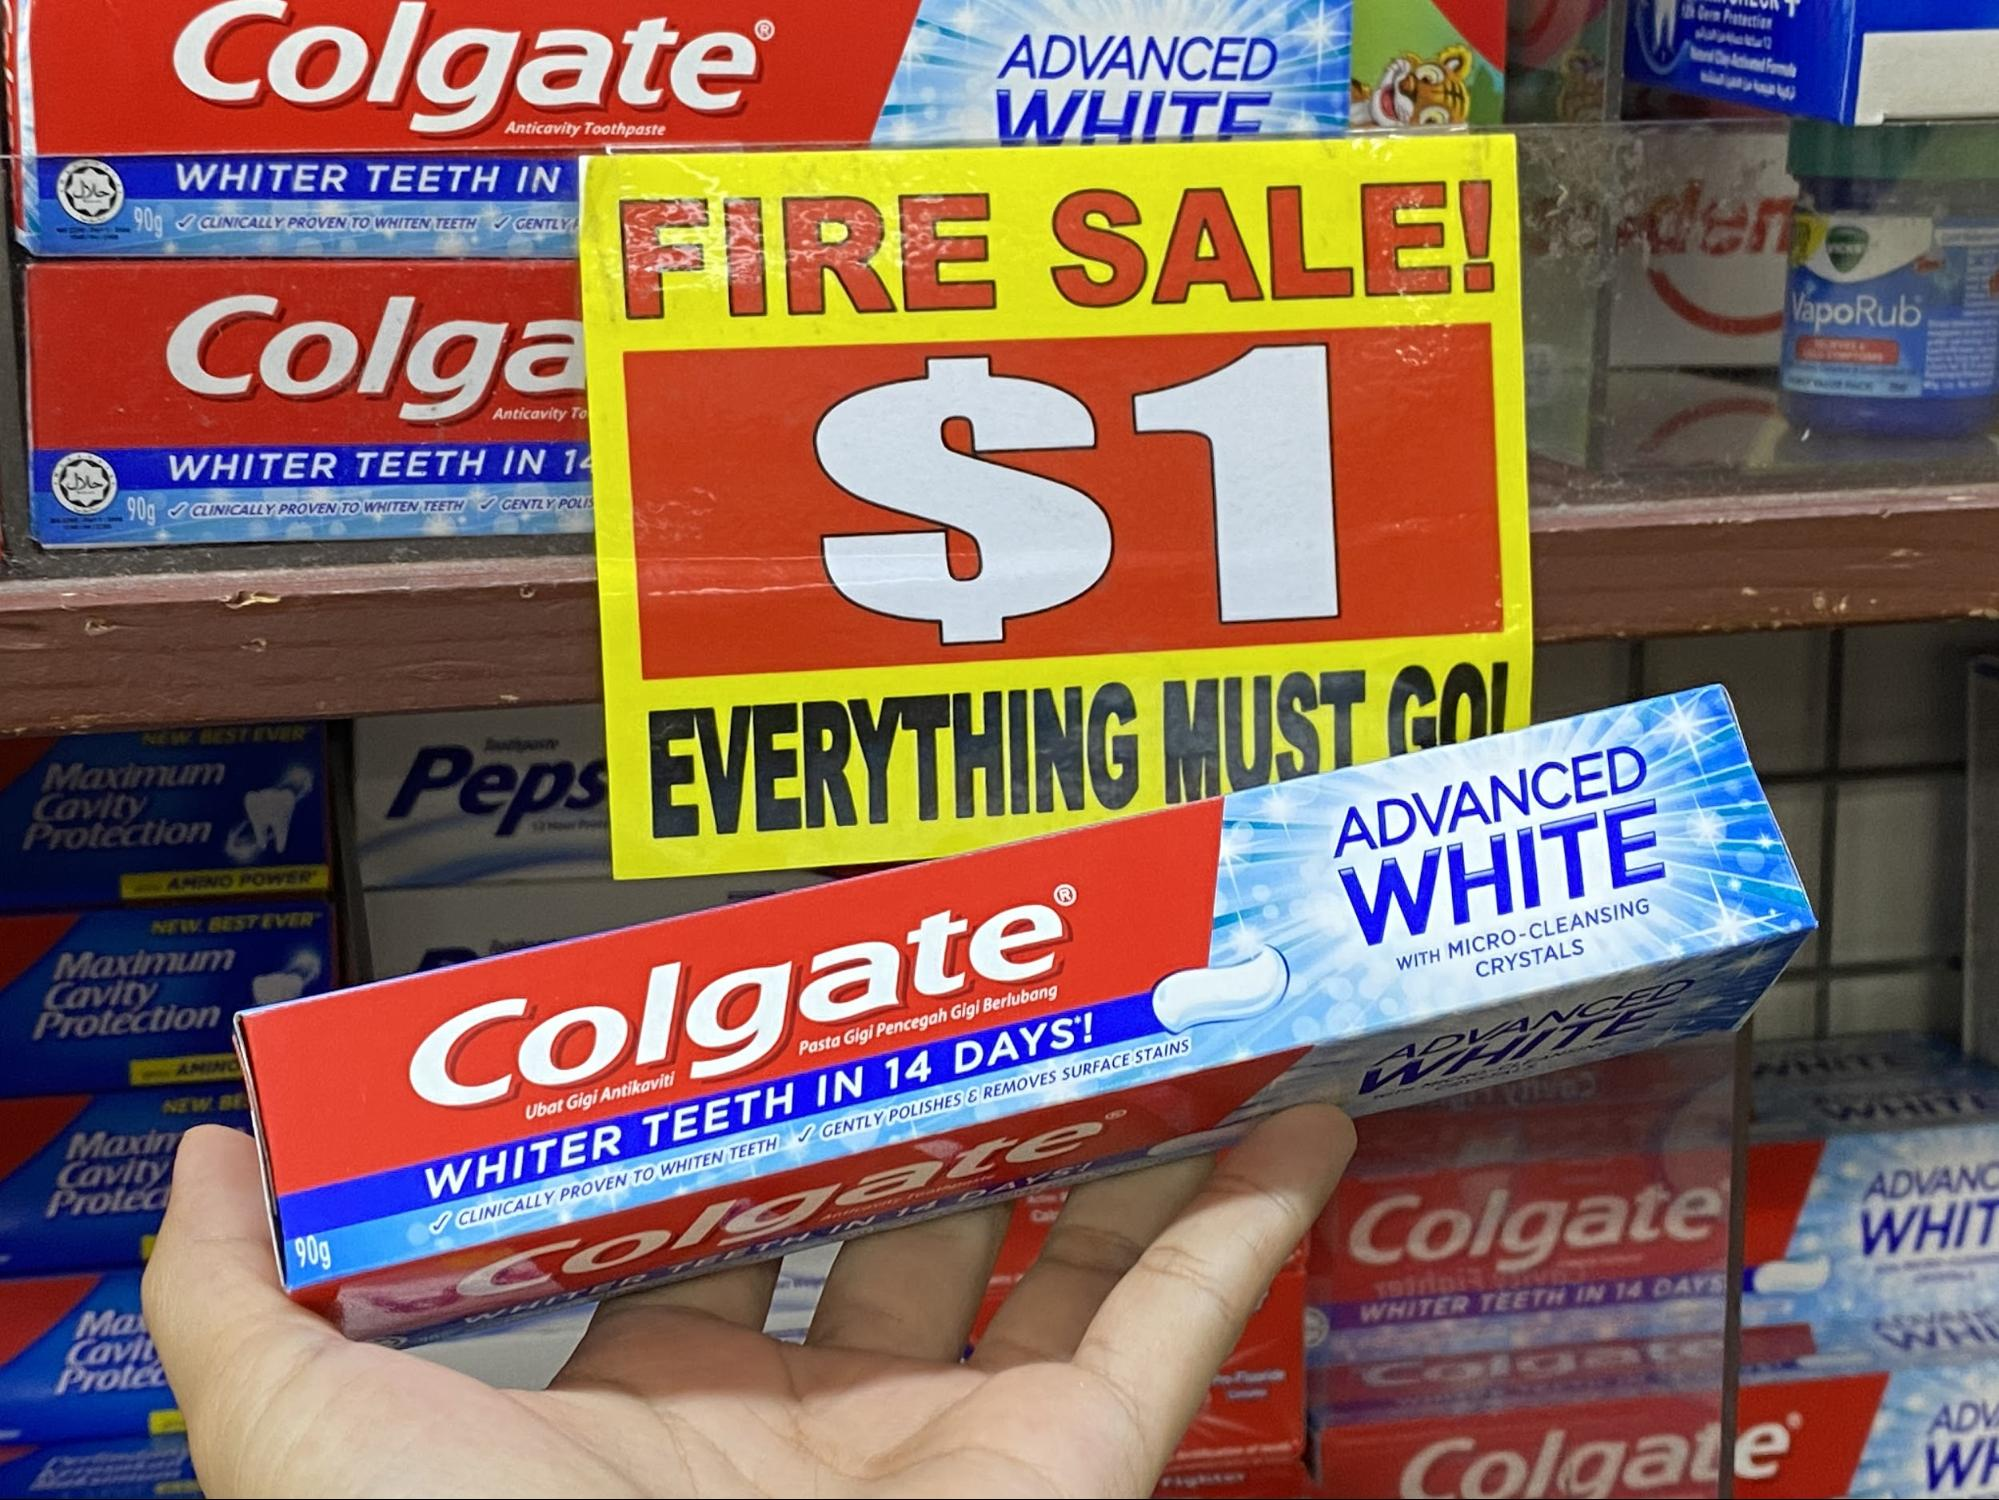 Colgate toothpaste at the value dollar store.